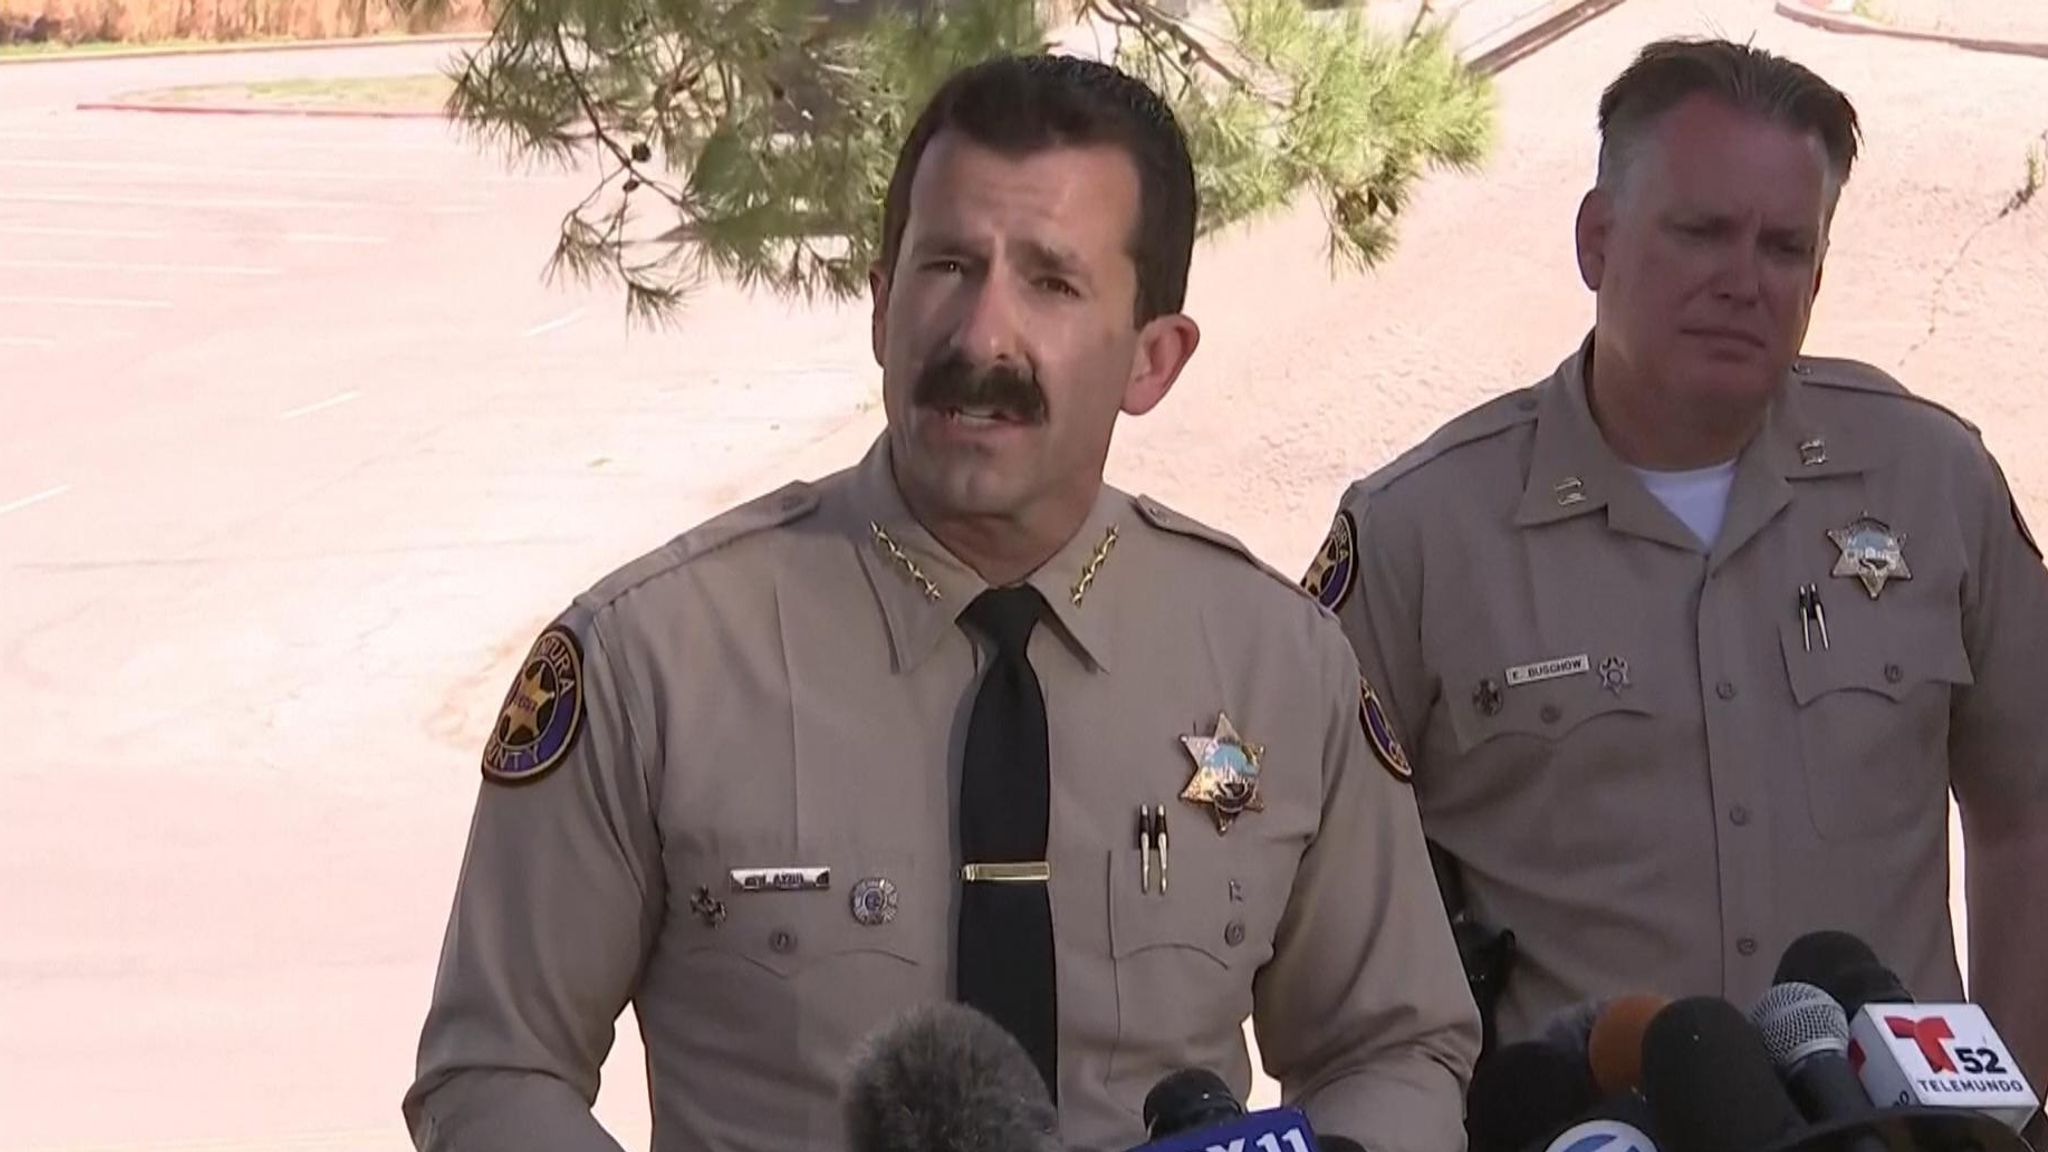 Sheriff Bill Ayub gives conformation police believe the body found is that of Rivera